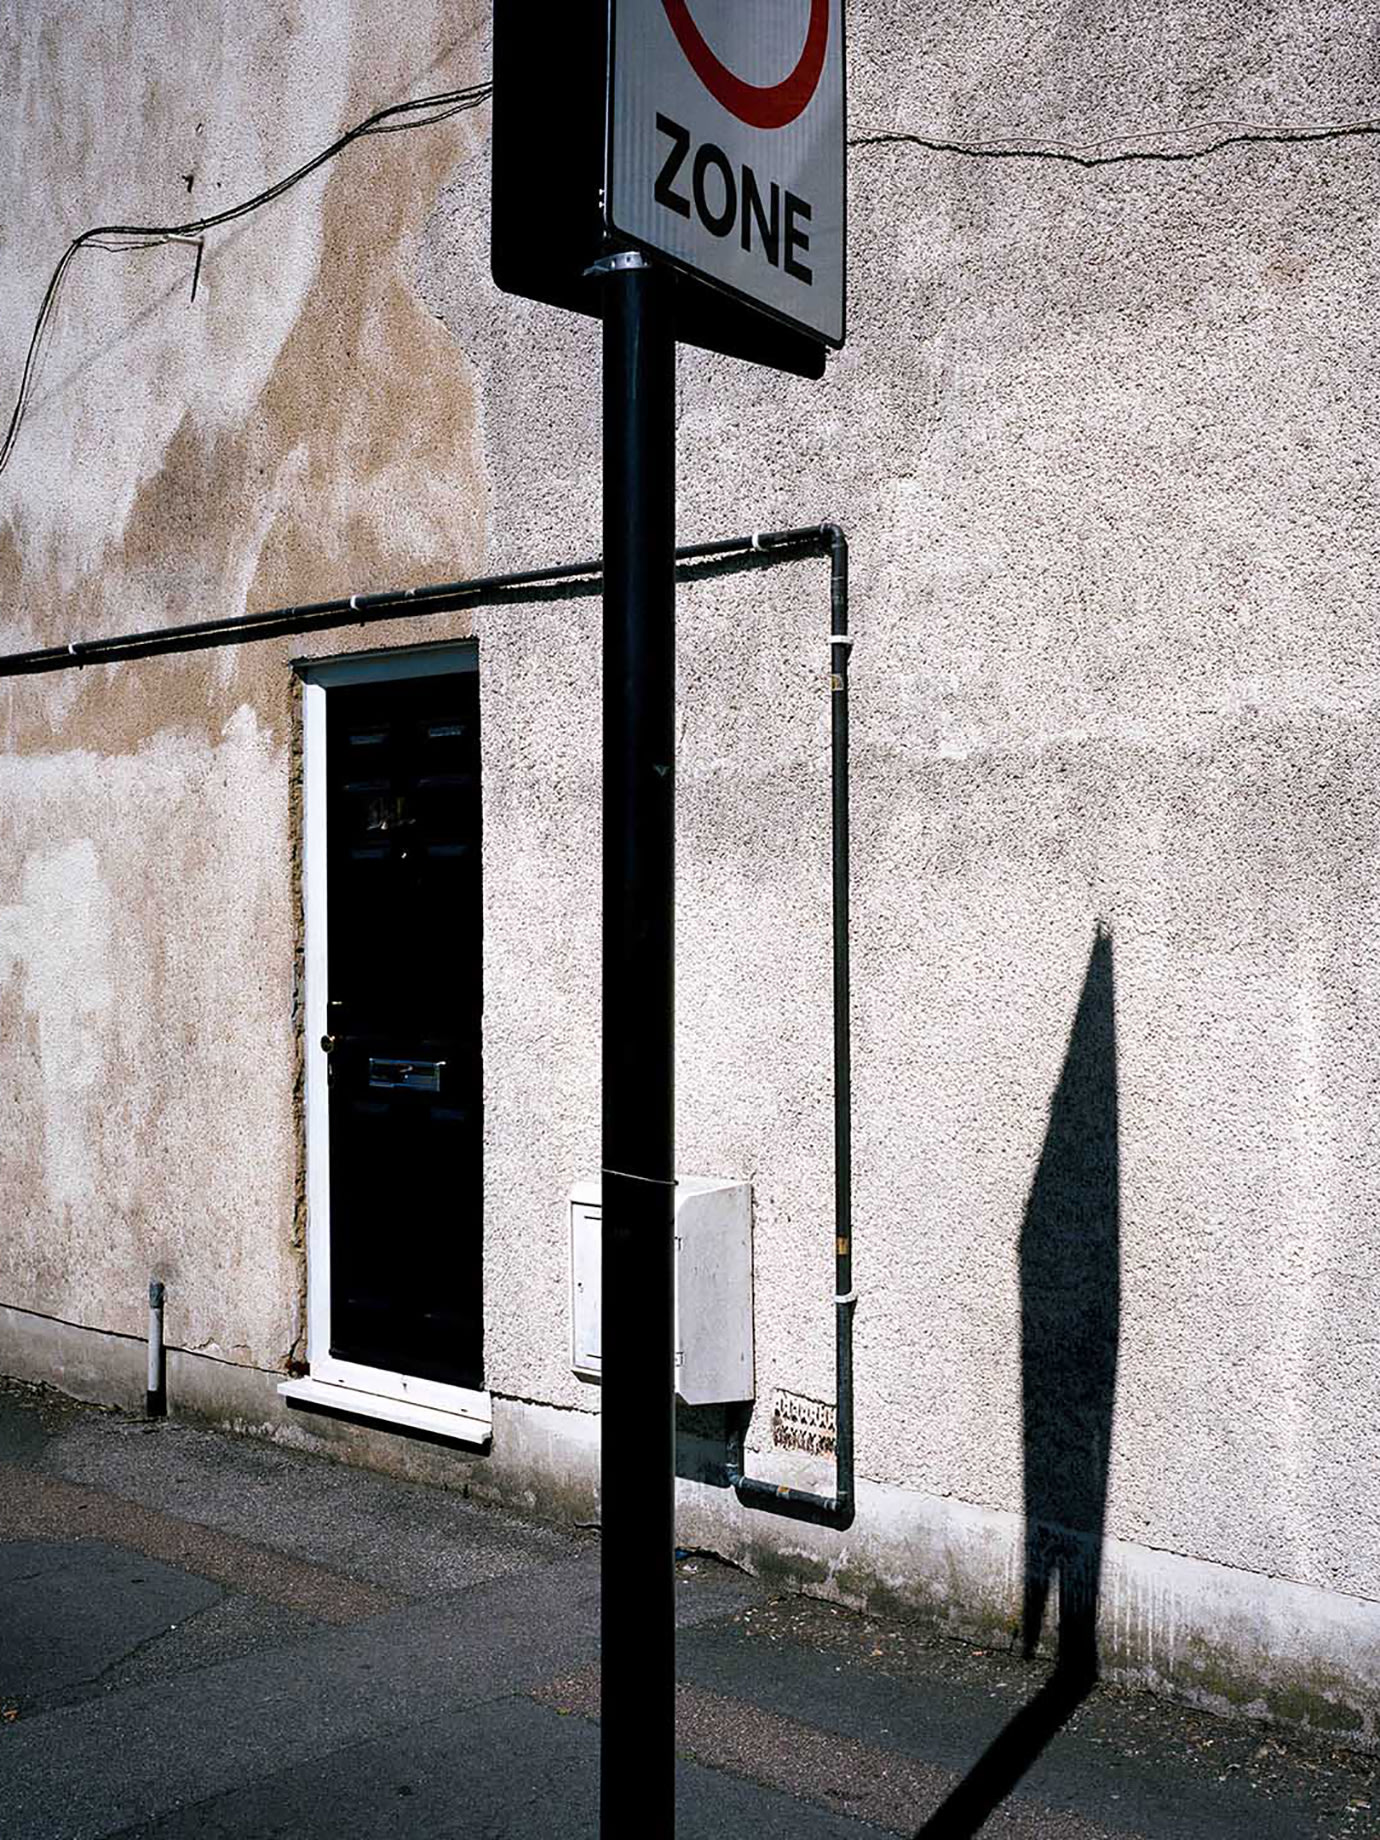 A street sign casting a shadow on a wall.